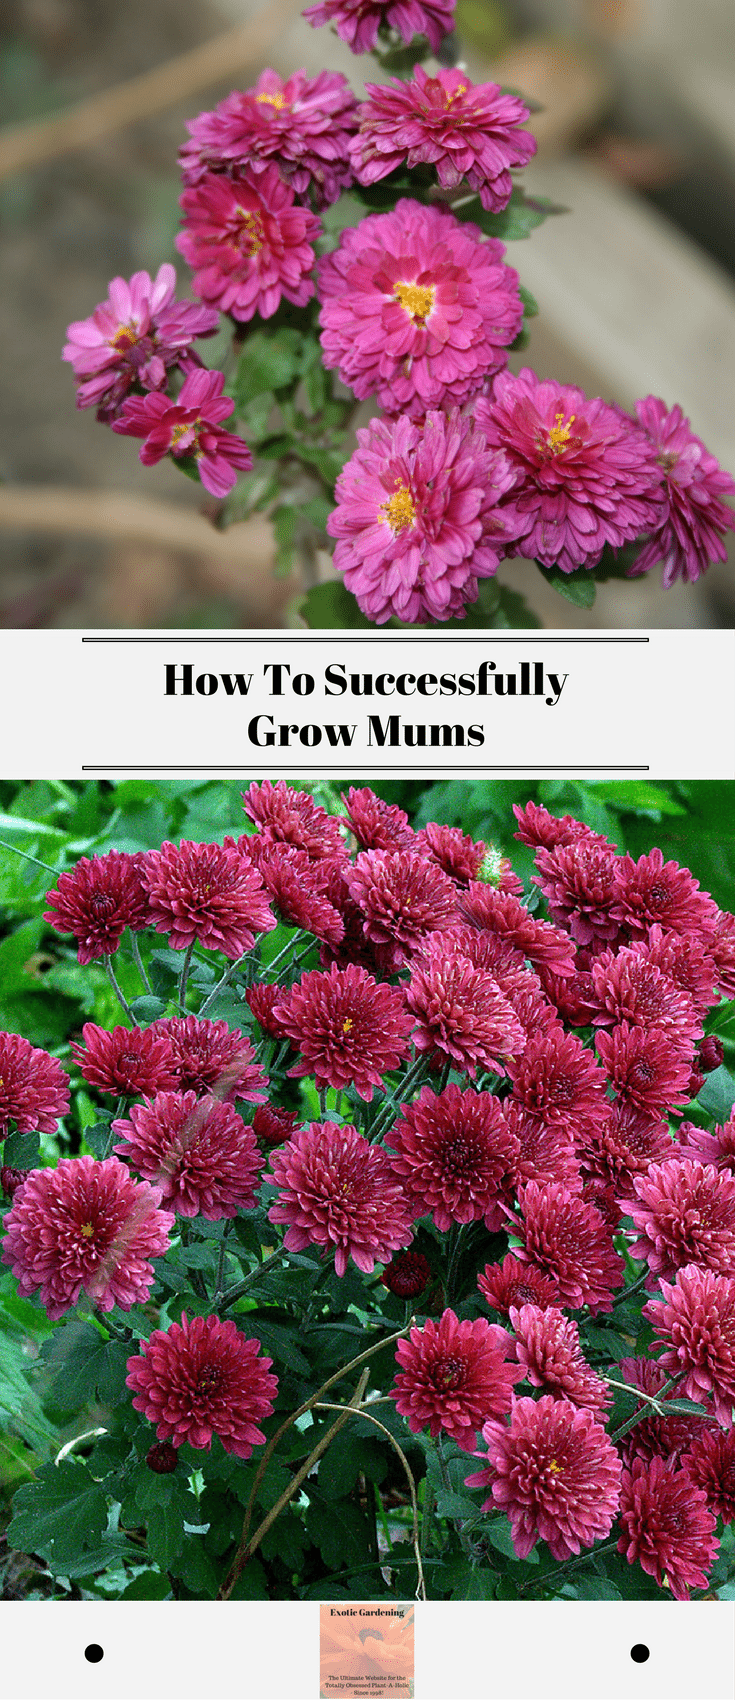 Chrysanthemums commonly referred to as mums are a beautiful fall chrysanthemums commonly referred to as mums are a beautiful fall blooming plant check out these tips to successfully grow mums exotic gardening izmirmasajfo